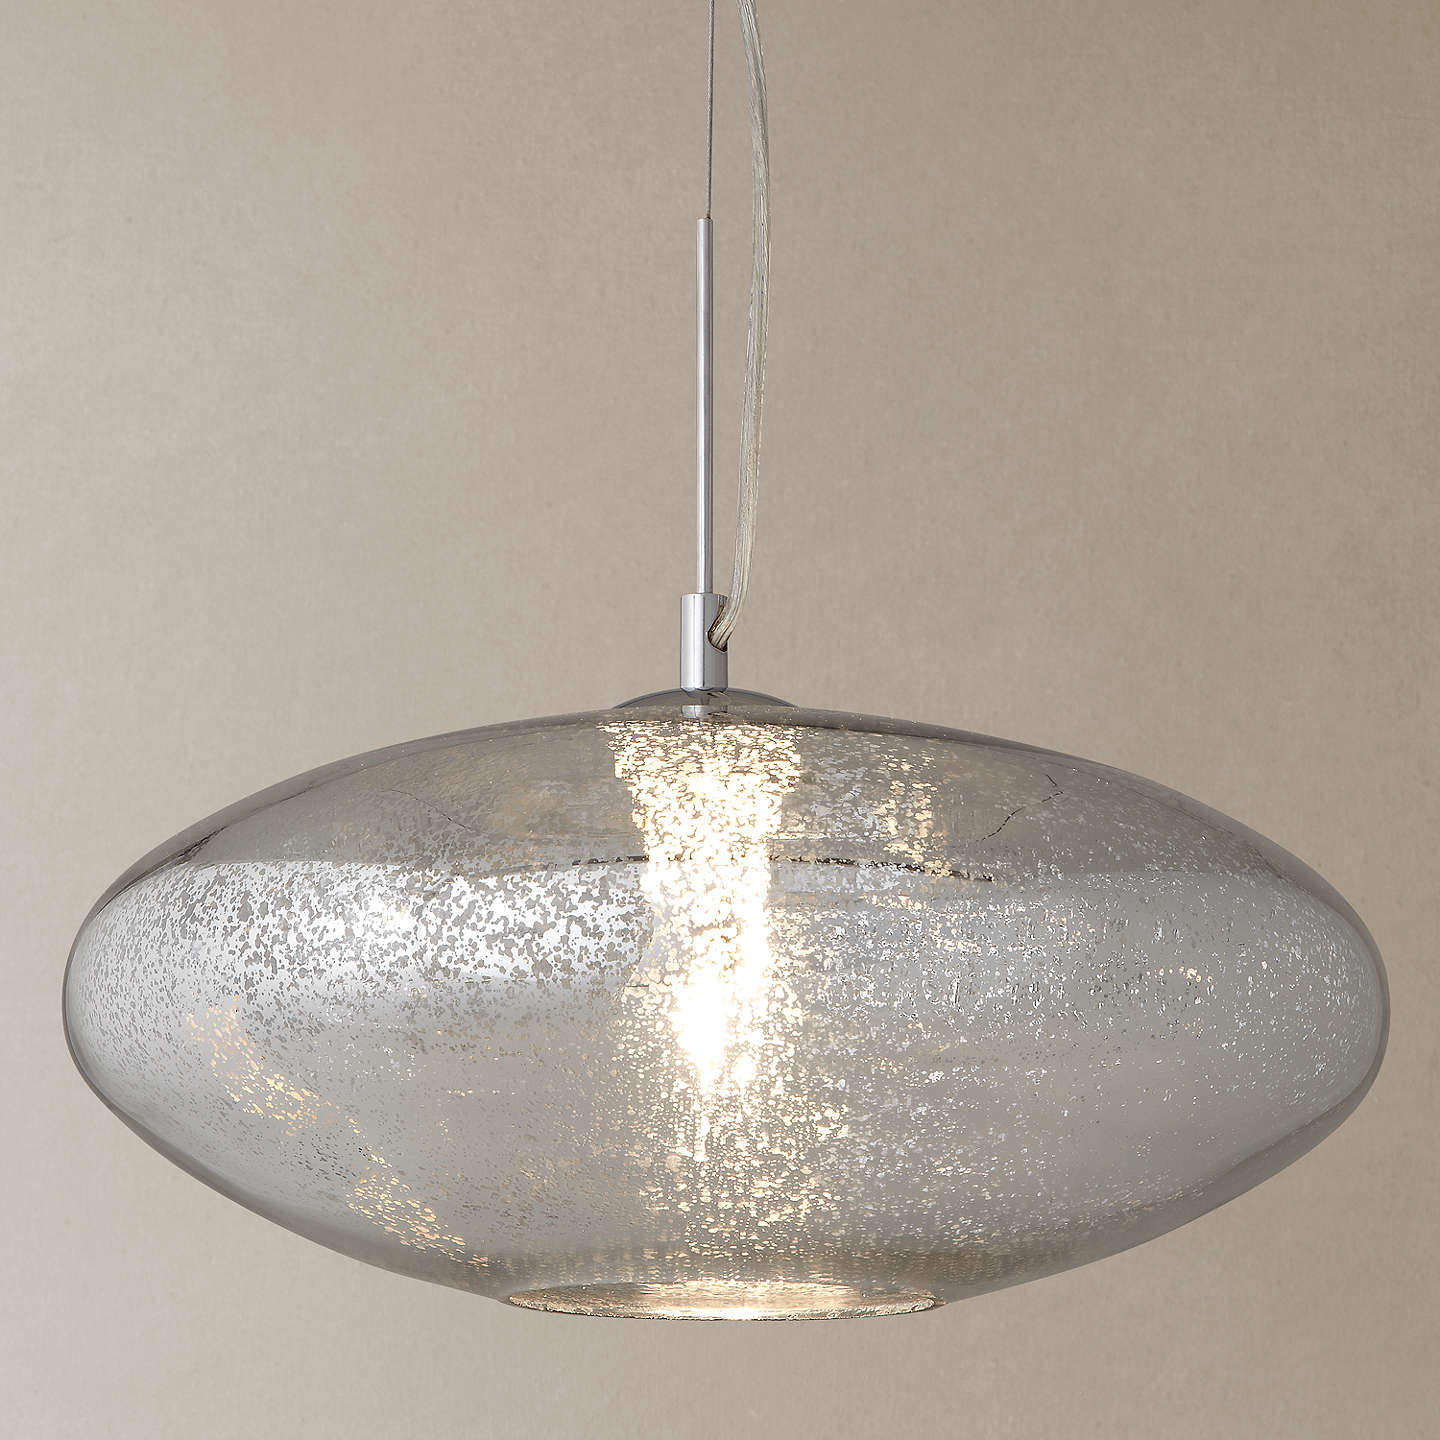 mercury pendant additional lights at with above anthropologie beautiful kitchen glass sink lighting